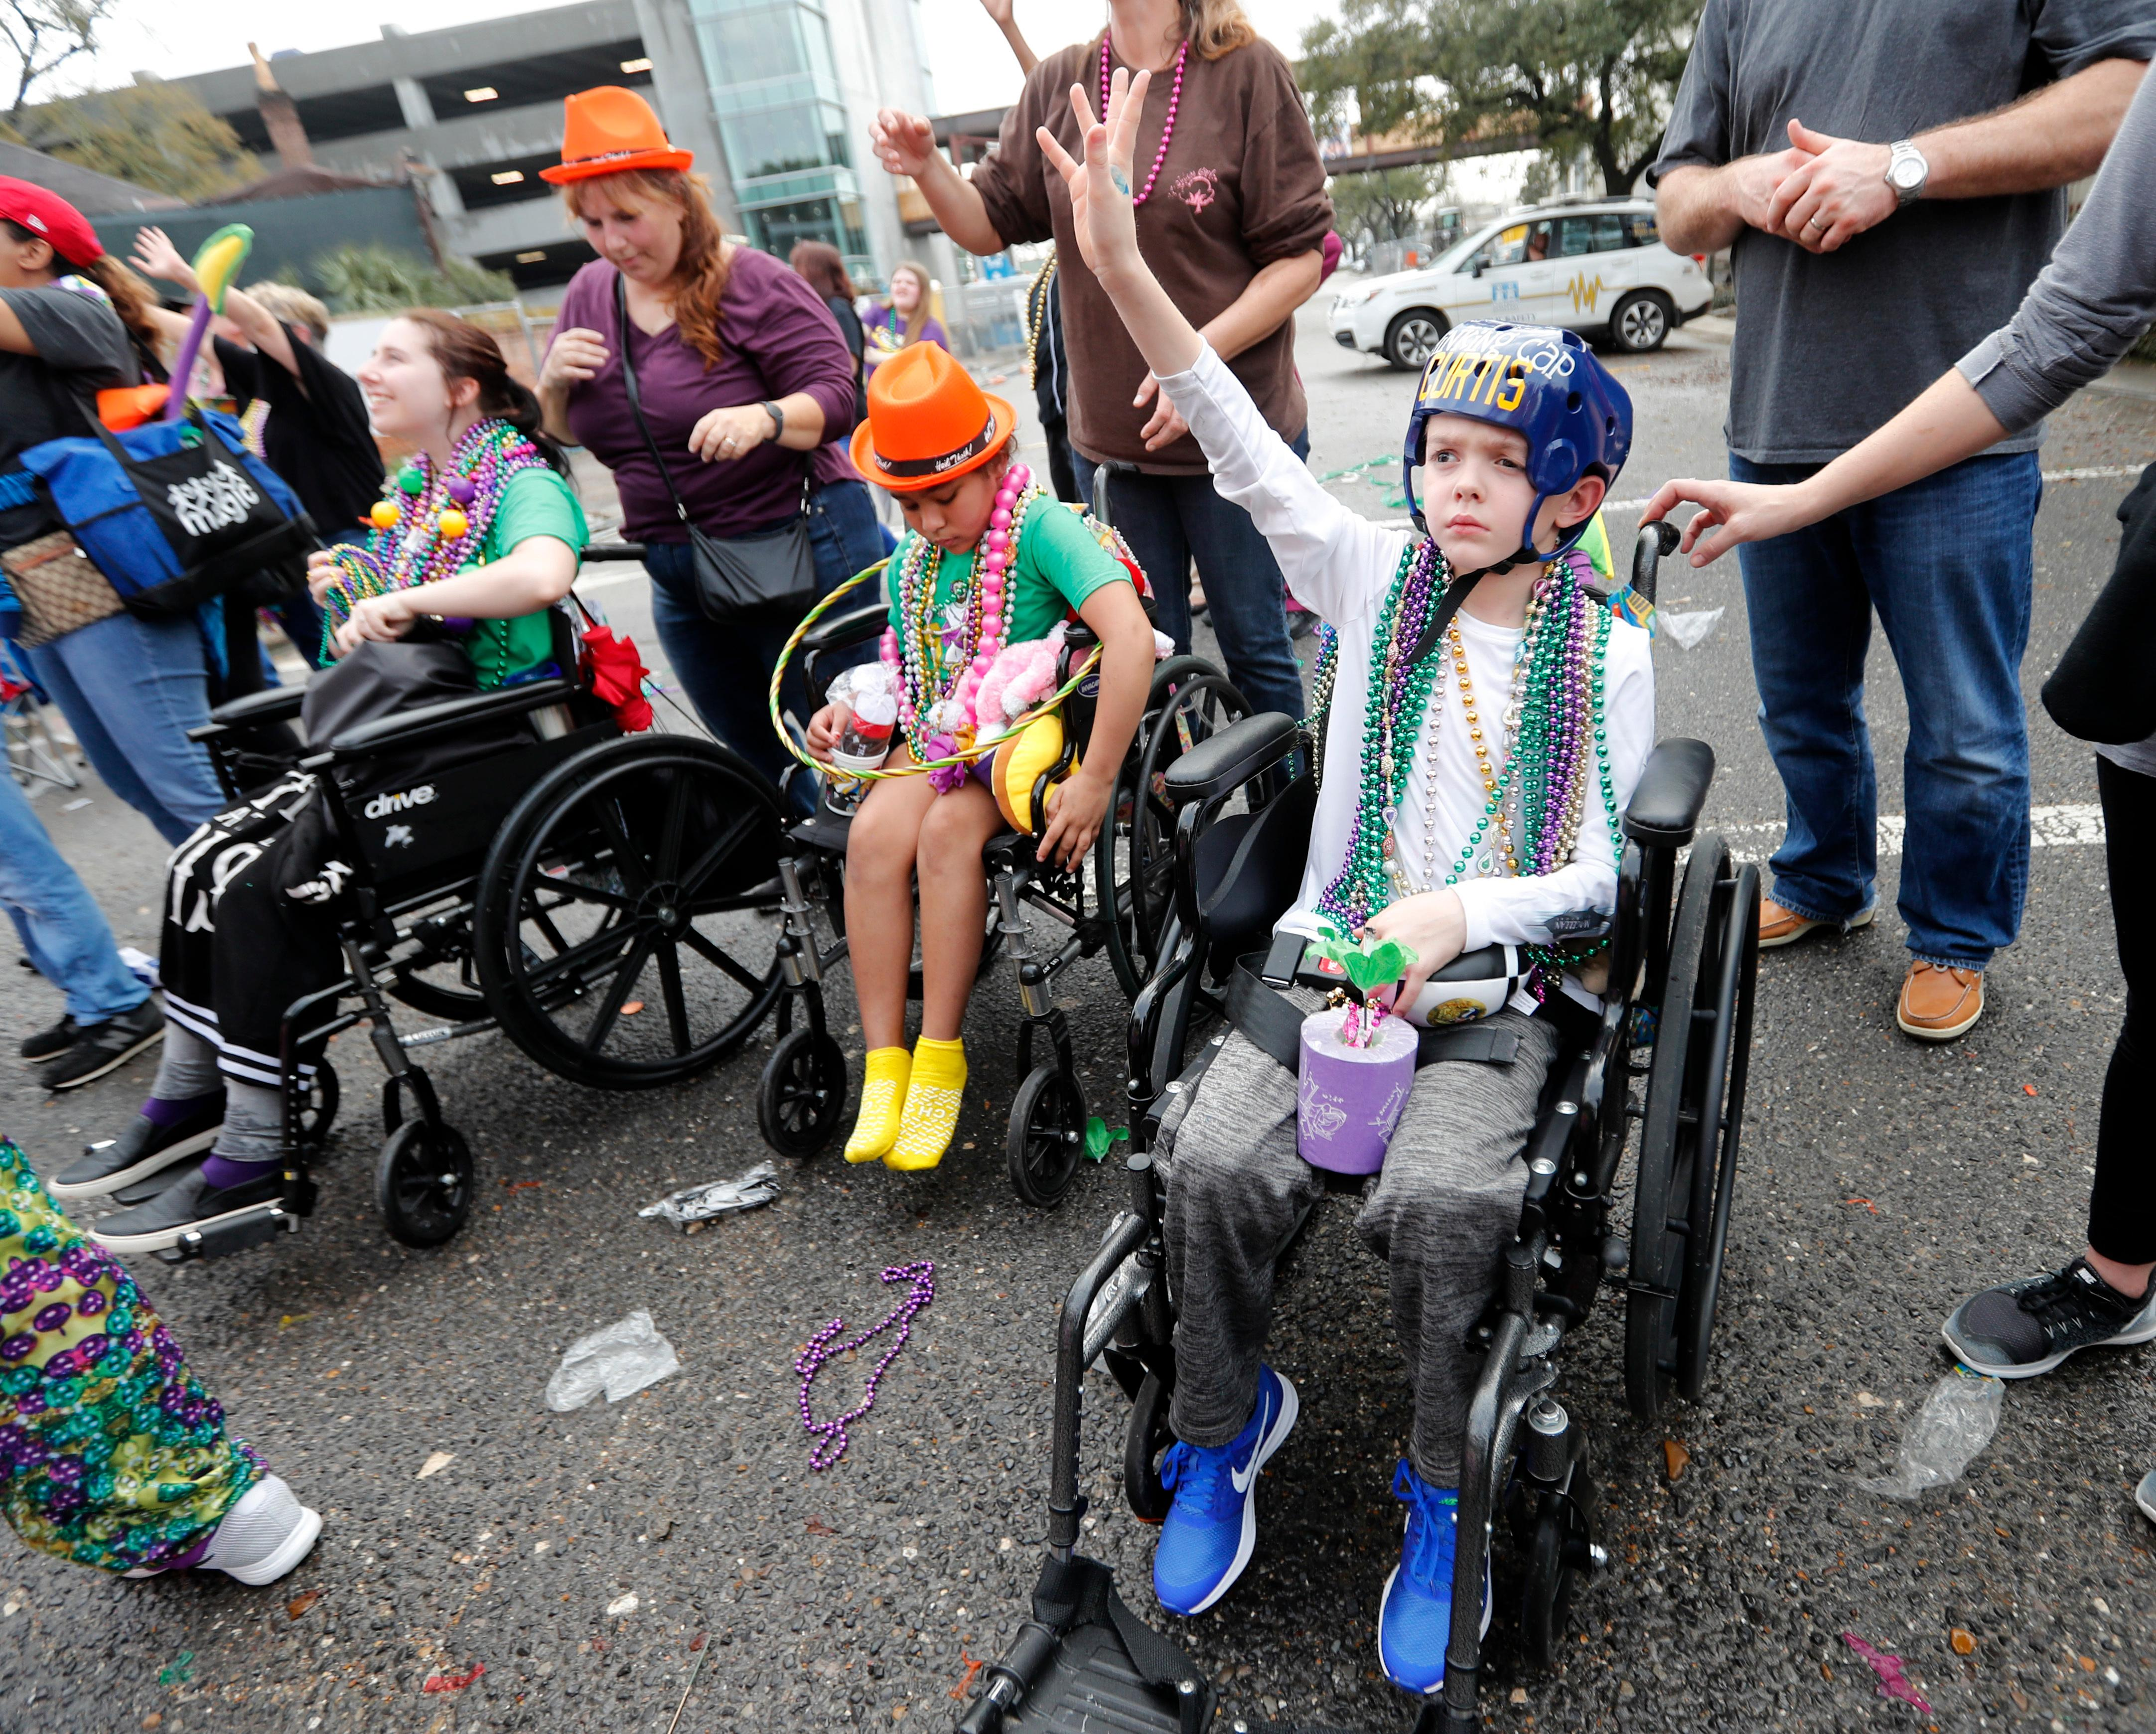 Patients from Children's Hospital of New Orleans wave for beads and trinkets outside the facility during the Krewe of Thoth Mardi Gras parade in New Orleans, Sunday, Feb. 11, 2018. The krewe's original parade route was designed specifically to serve people who were unable to attend other parades in the city. The route passes in front of several extended healthcare facilities. Carnival season will culminate on Mardi Gras day this Tuesday, Feb. 13. (AP Photo/Gerald Herbert)